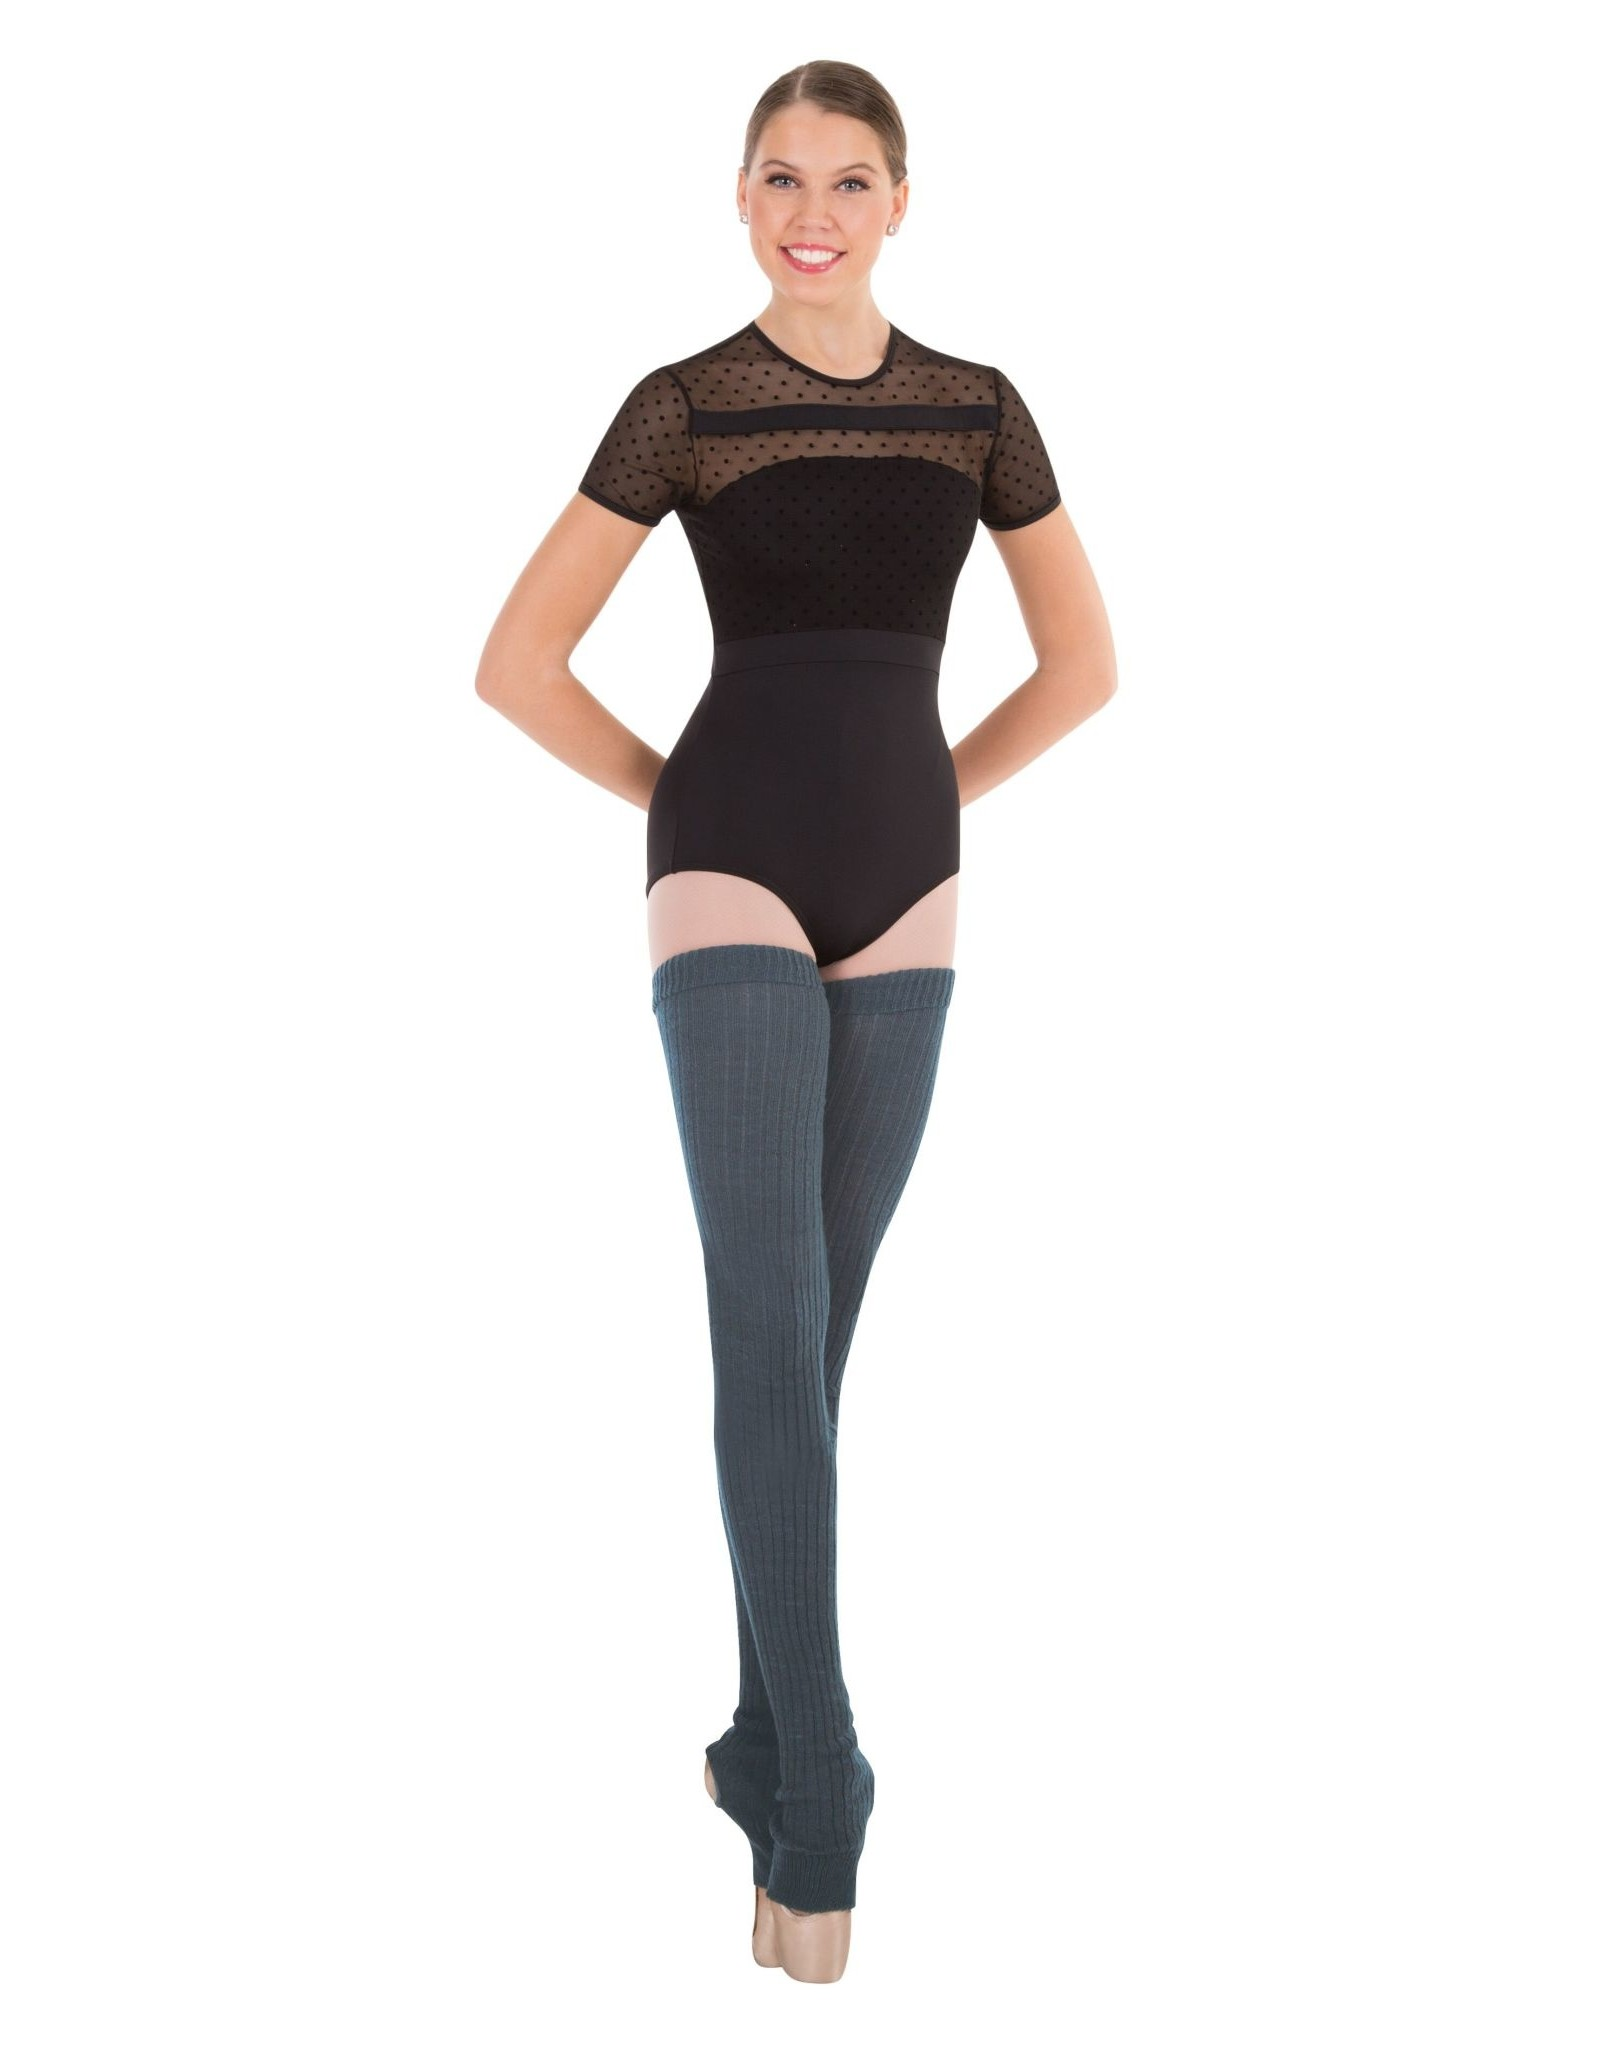 Body Wrappers Extra-Long Stirrup Leg/Thigh Warmers (92)